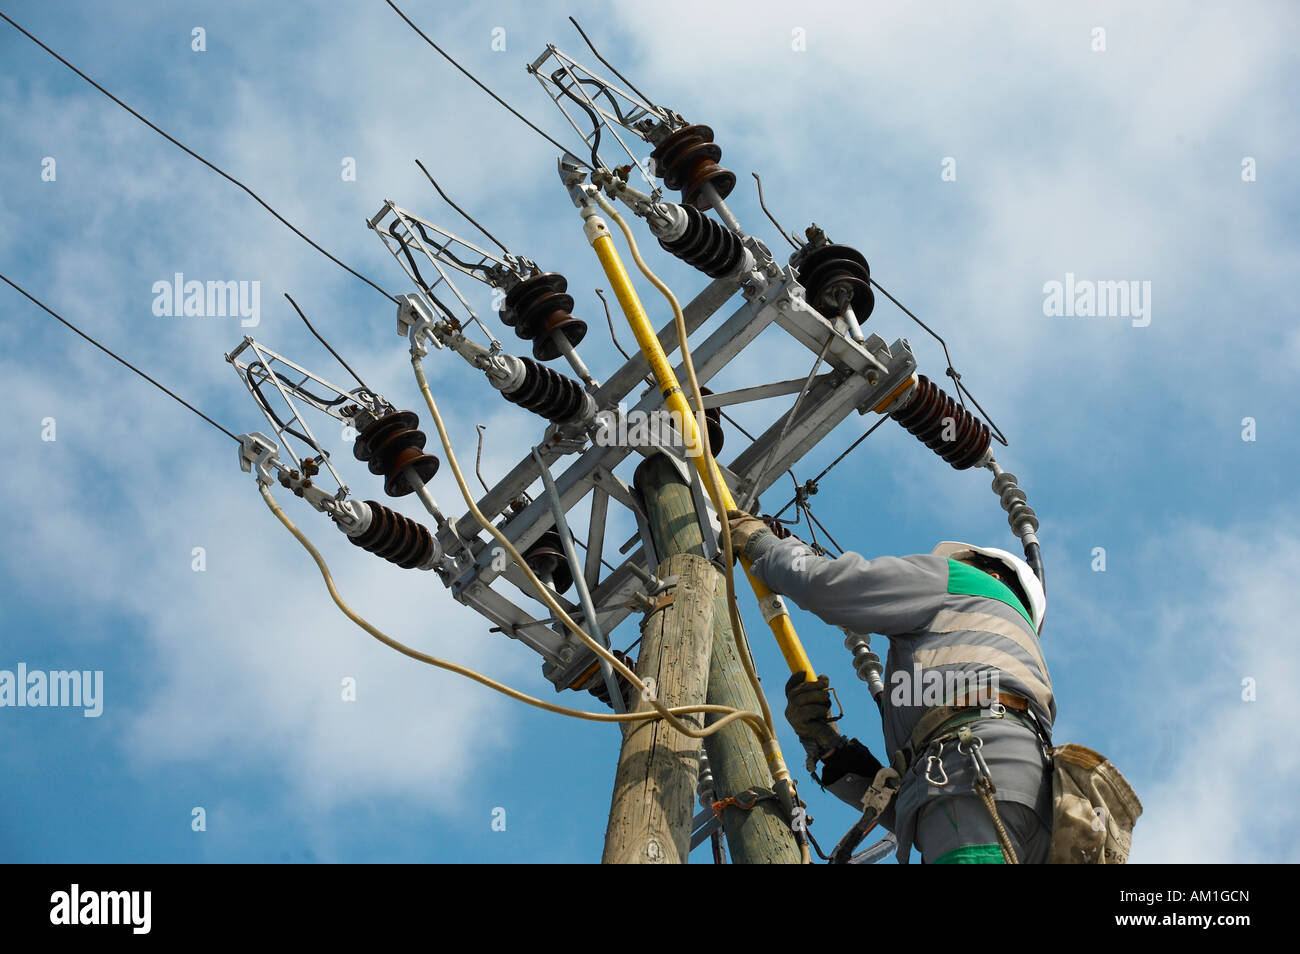 A worker grounds an overhead powerline Stock Photo: 15117908 - Alamy